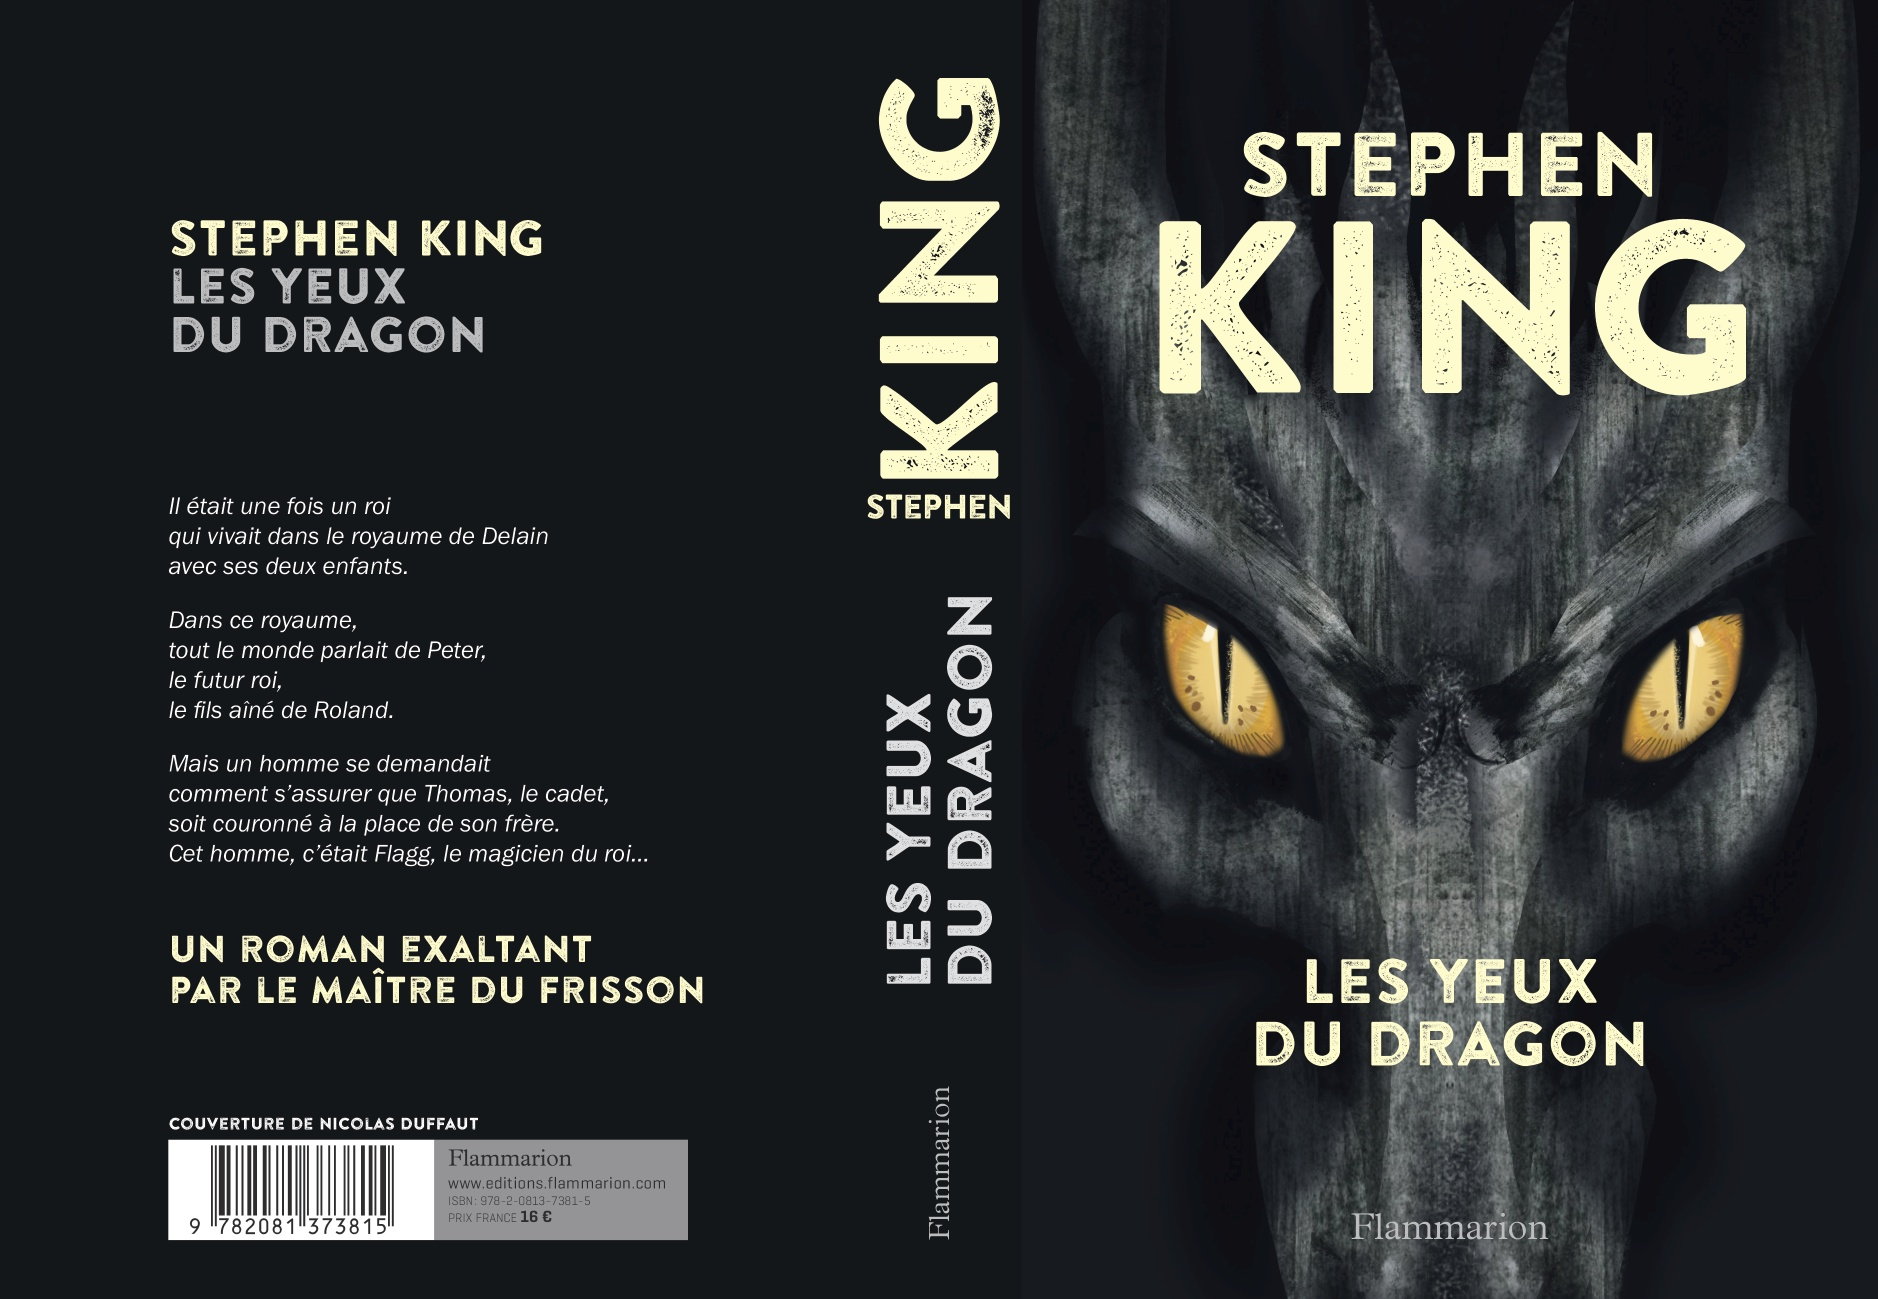 9782081373815_LesYeuxDuDragon_Aplat_stephen-king-2